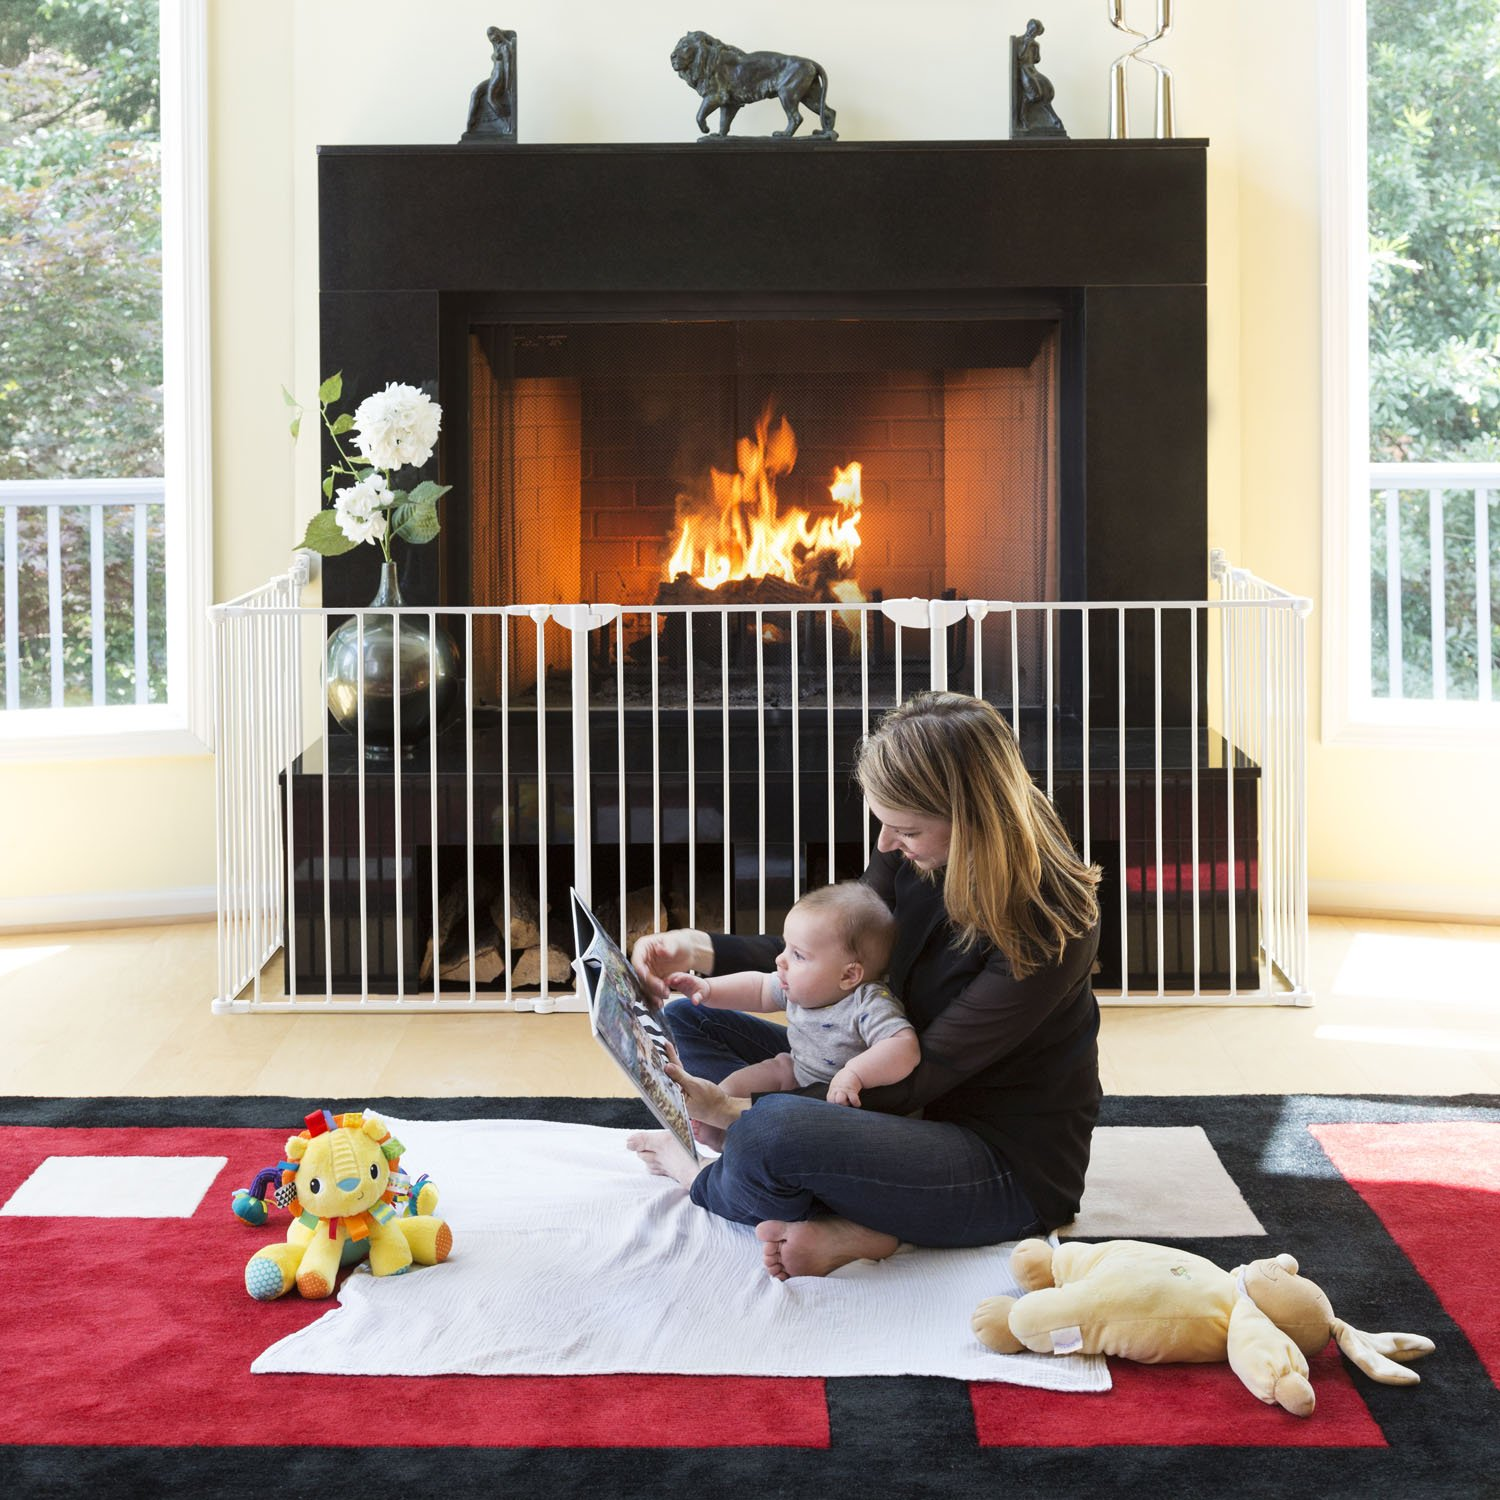 QDOS Construct-A-SAFEGATE – Create Customized Safe Spaces Around Fireplaces, Large Openings, Stairways - Includes a Door & 2 Sections - Create Enclosures & Playards with Additional Sections   Slate by Qdos Safety (Image #4)